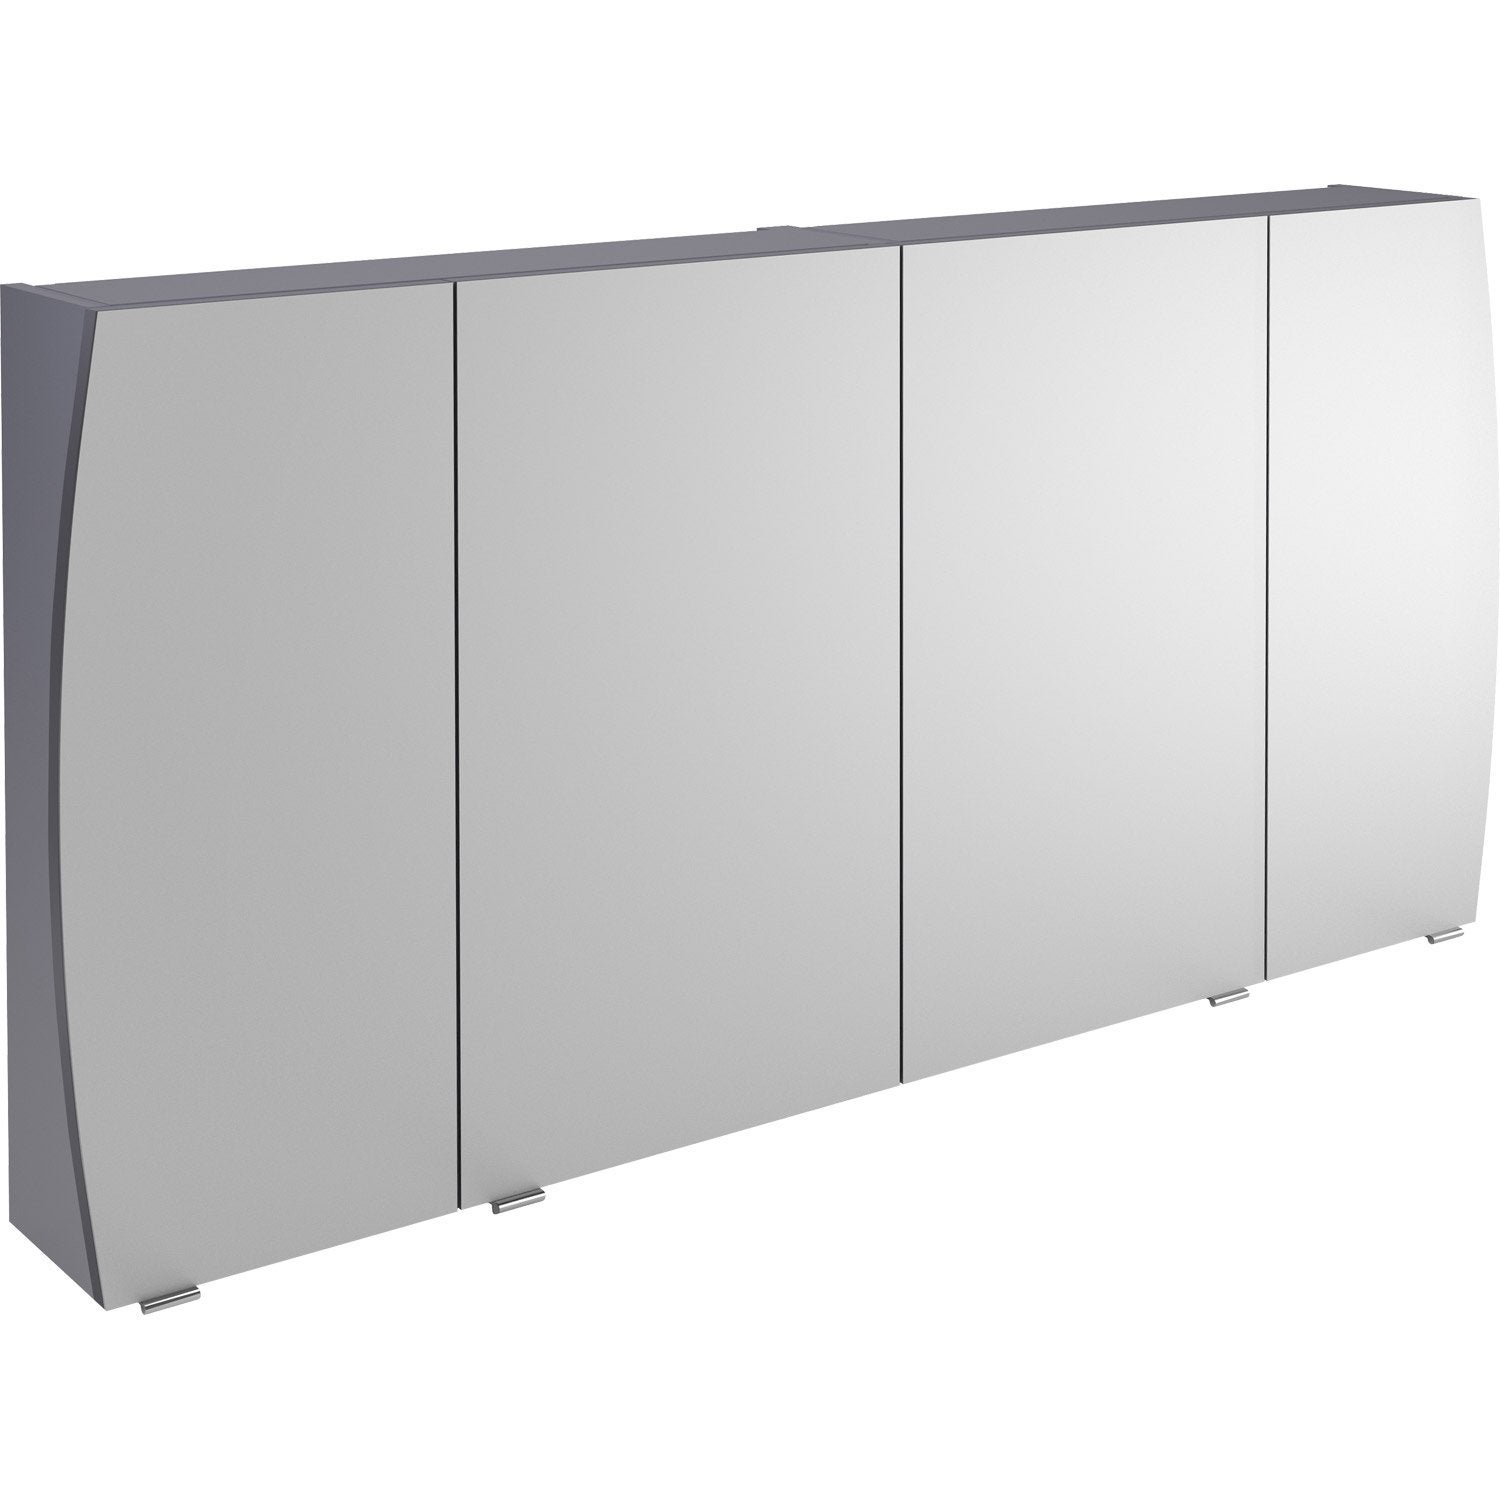 armoire de toilette l 140 cm gris image leroy merlin. Black Bedroom Furniture Sets. Home Design Ideas